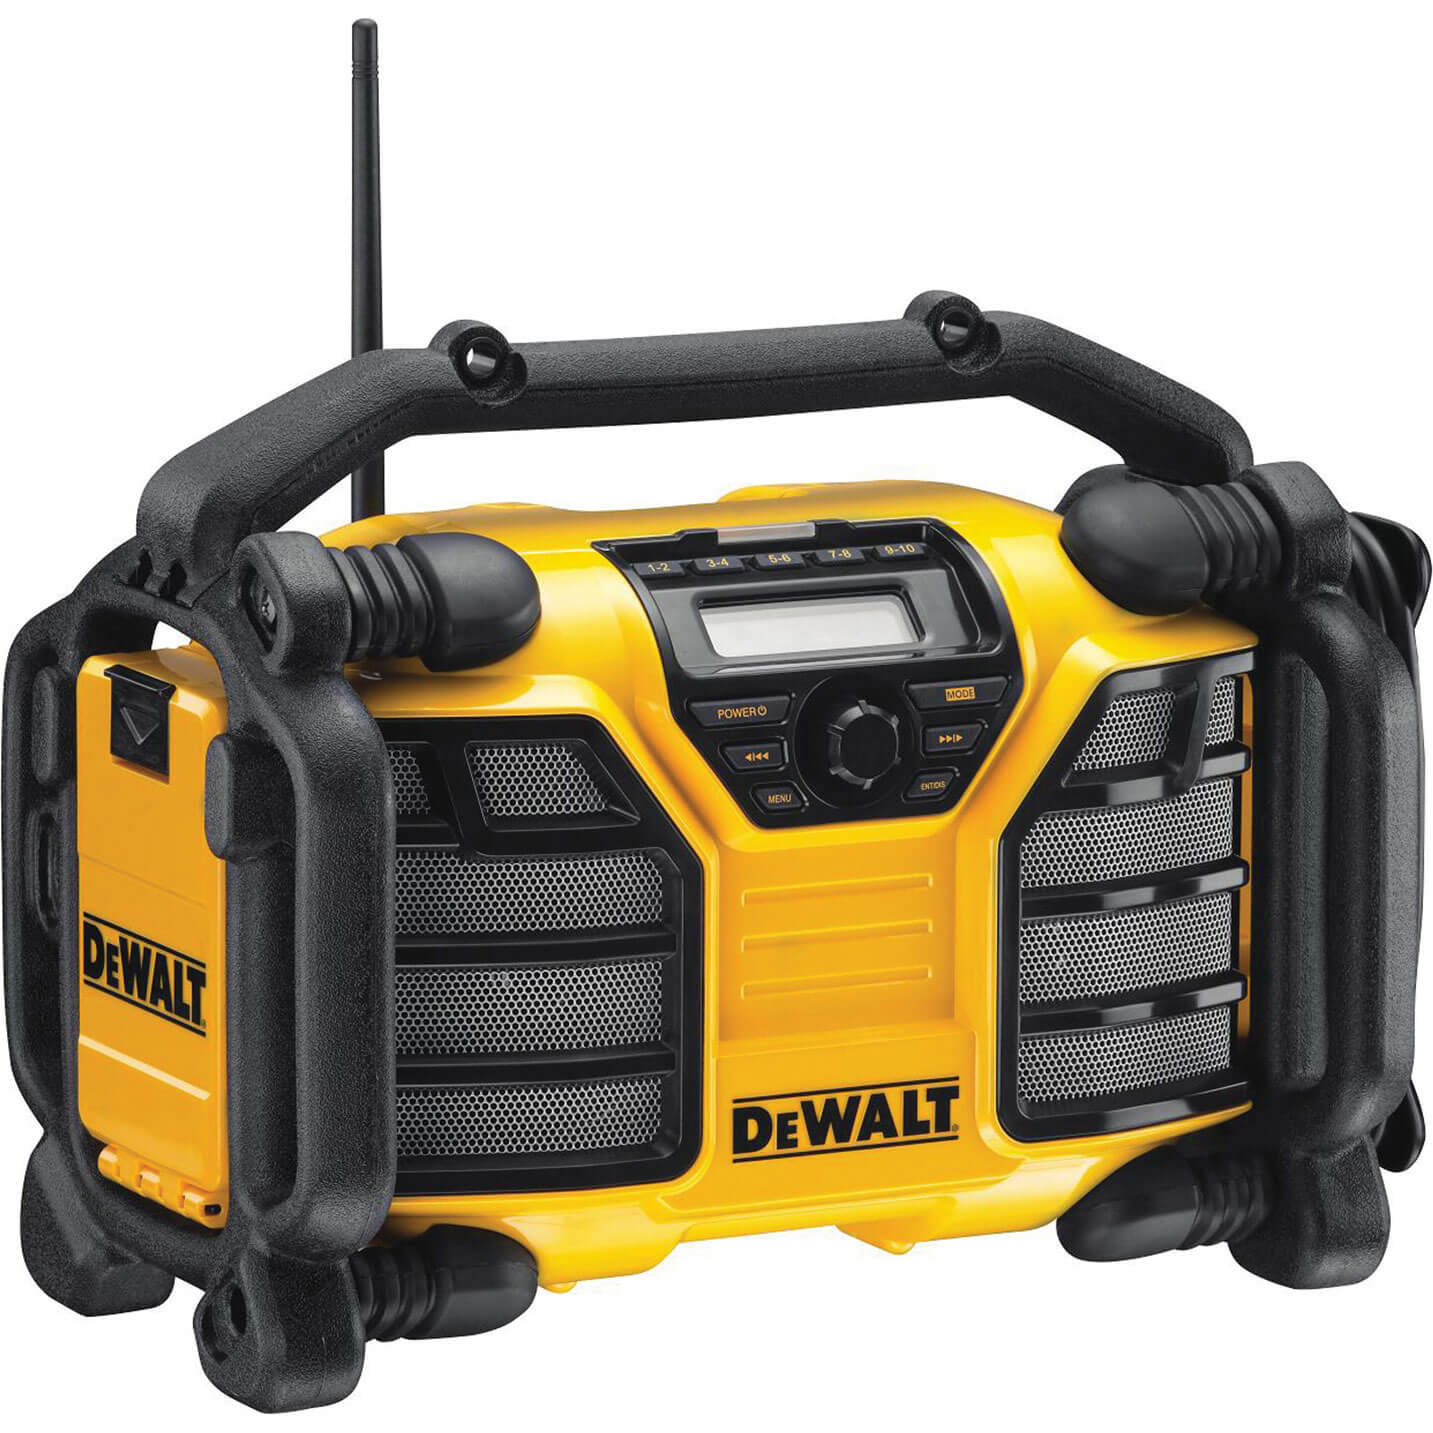 Image of DeWalt DCR017 XR DAB Job Site Workshop Radio & Battery Charger 240v